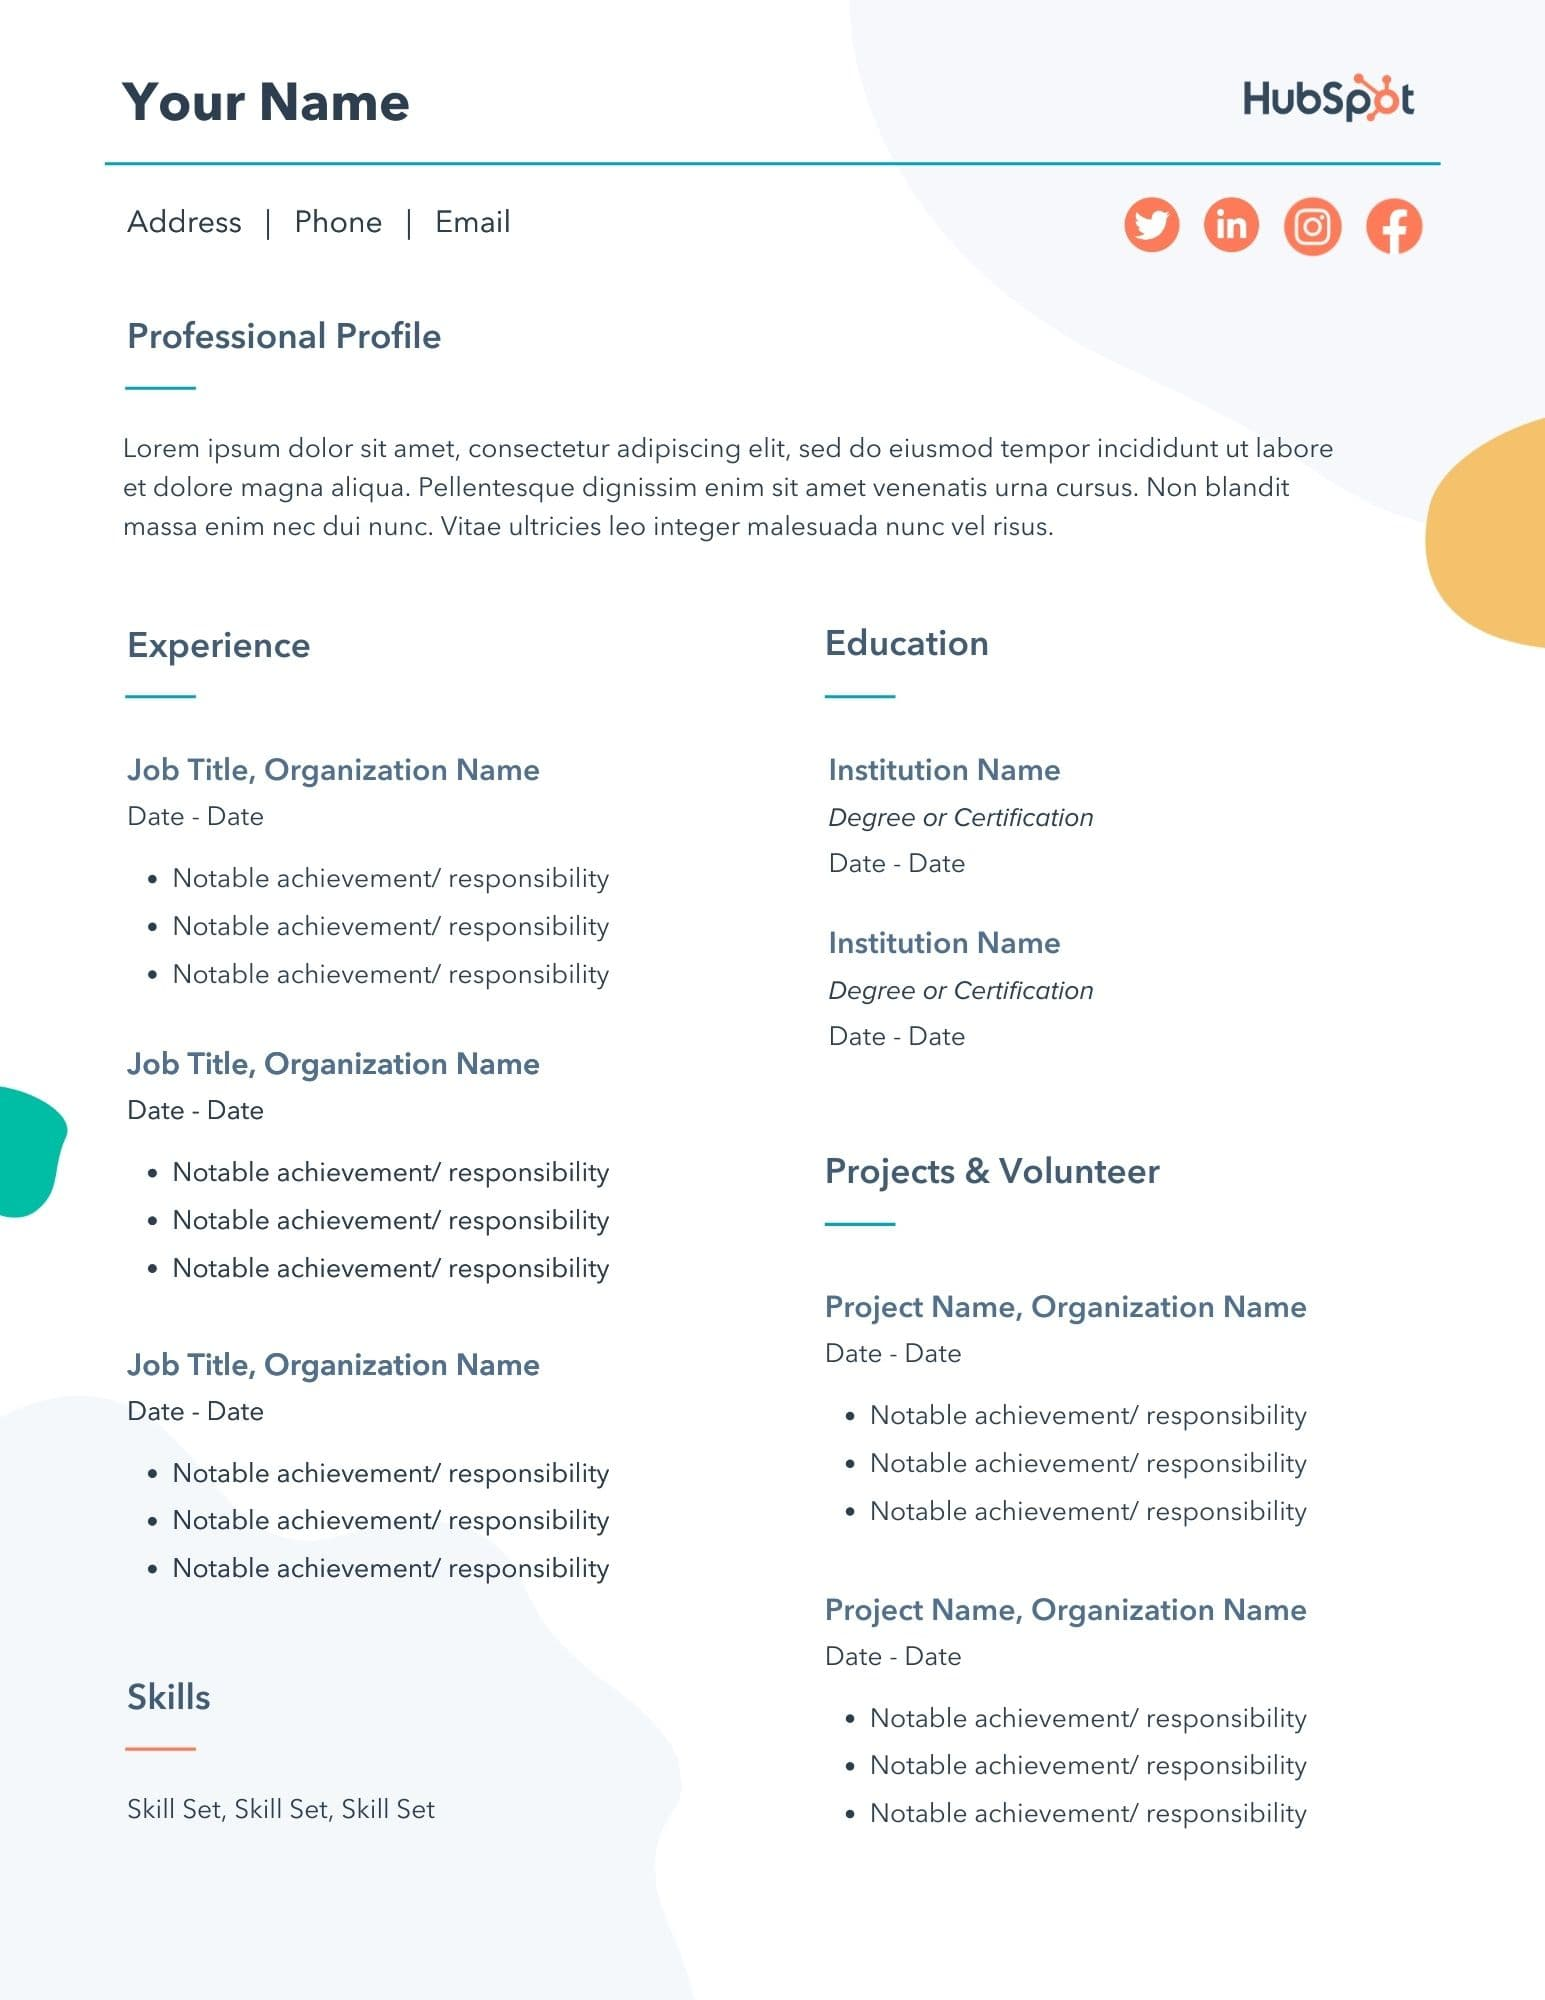 free resume templates for microsoft word to make your own job application template high Resume Job Application Resume Template